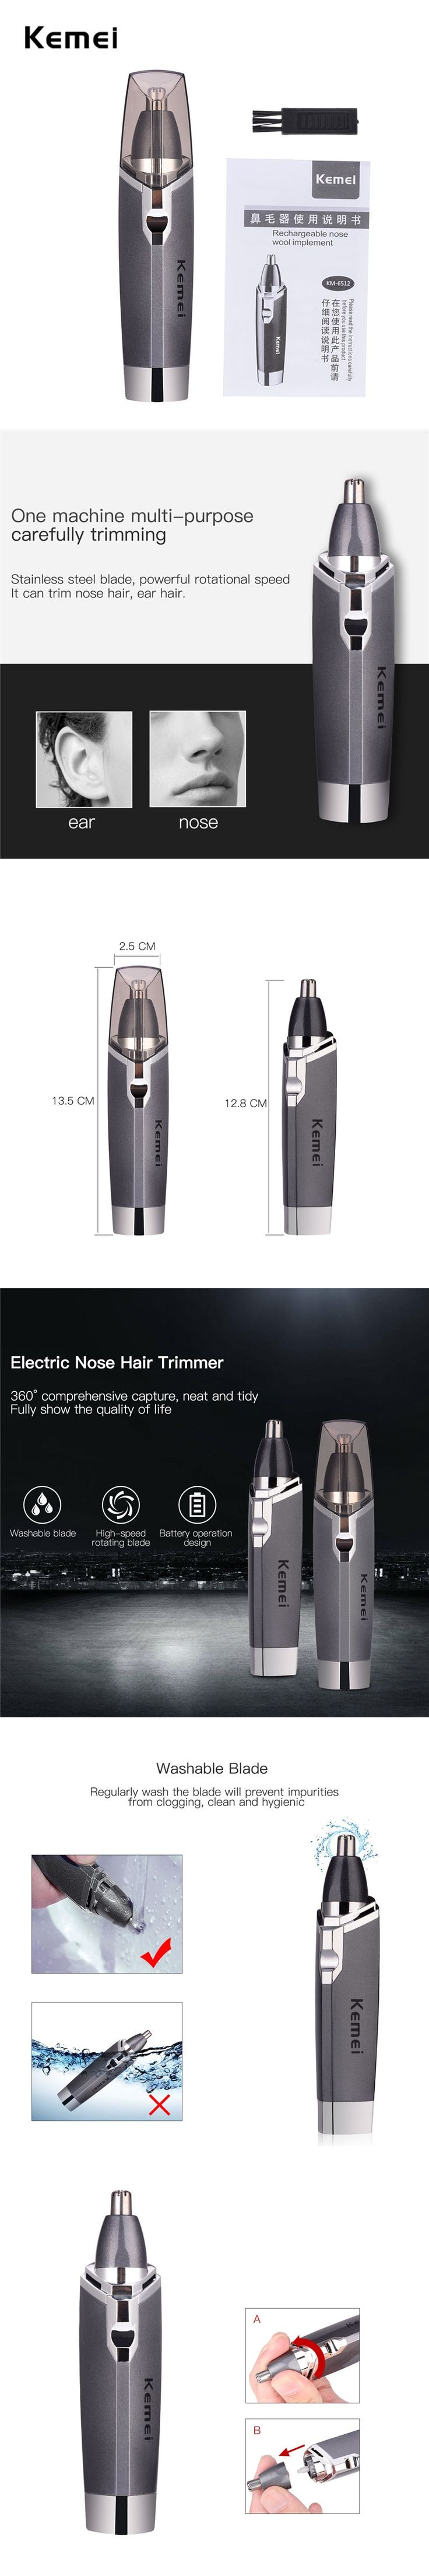 Portable Electric Nose Hair Trimmer Nose Hair Cut For Men High Speed Rotary Blade Trimmer Clipper Battery Operate KM-6512 G00